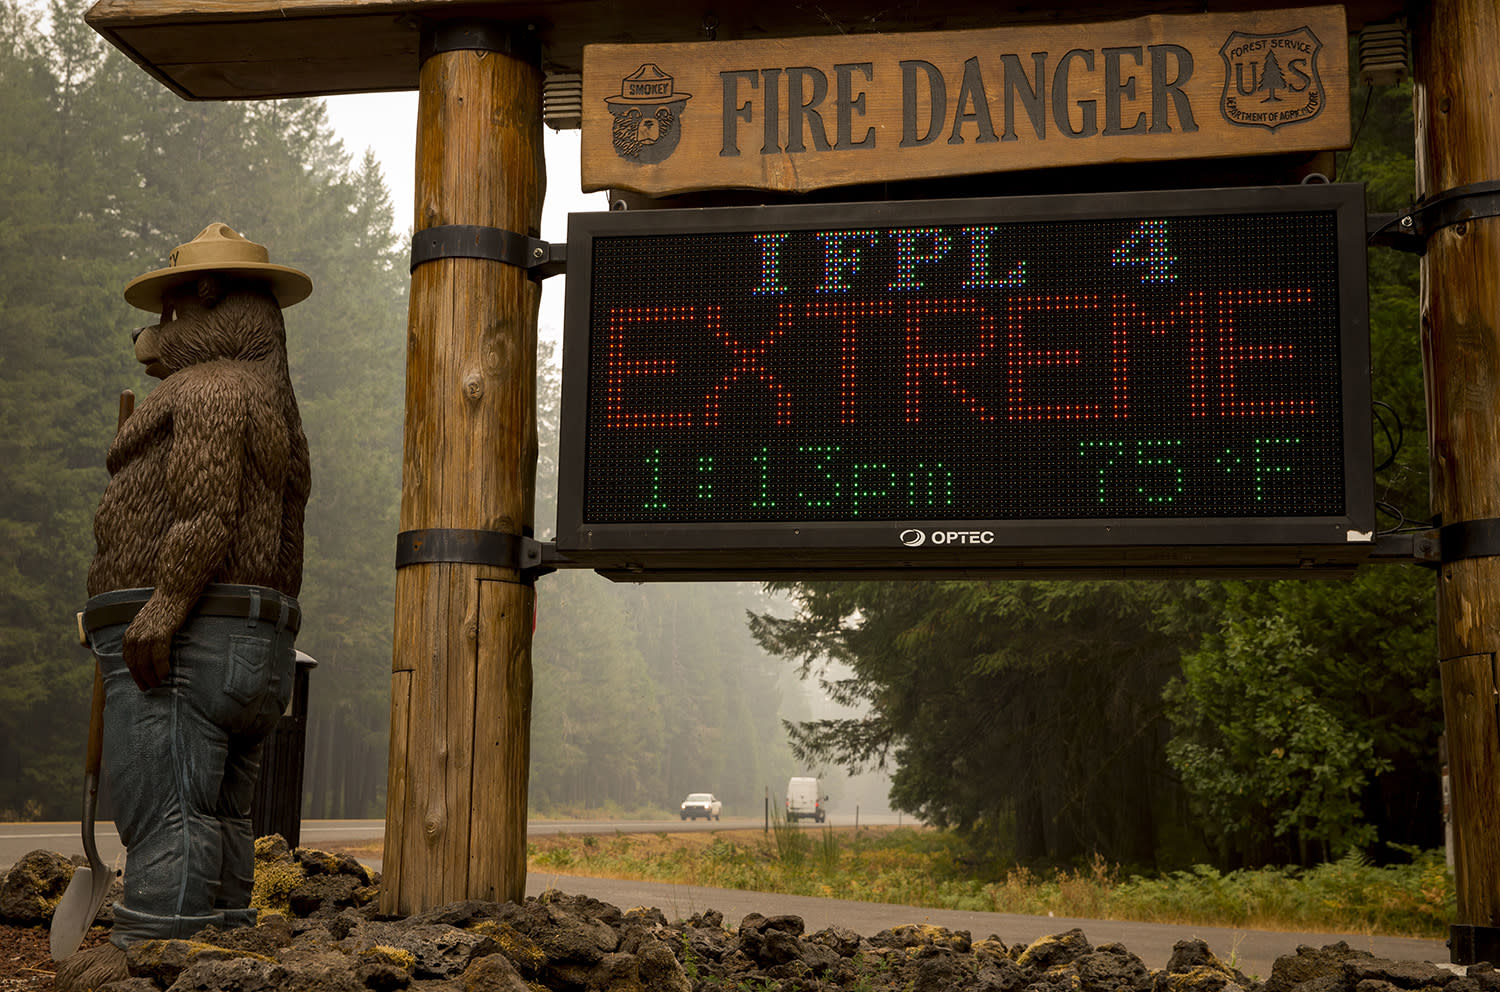 <p>A sign board at the McKenzie River Ranger Station makes clear the fire danger level in the Willamette National Forest, on Sept. 6, 2017 in Blue River, Ore. Several fires are burning in the area. (Photo: Andy Nelson/The Register-Guard via AP) </p>